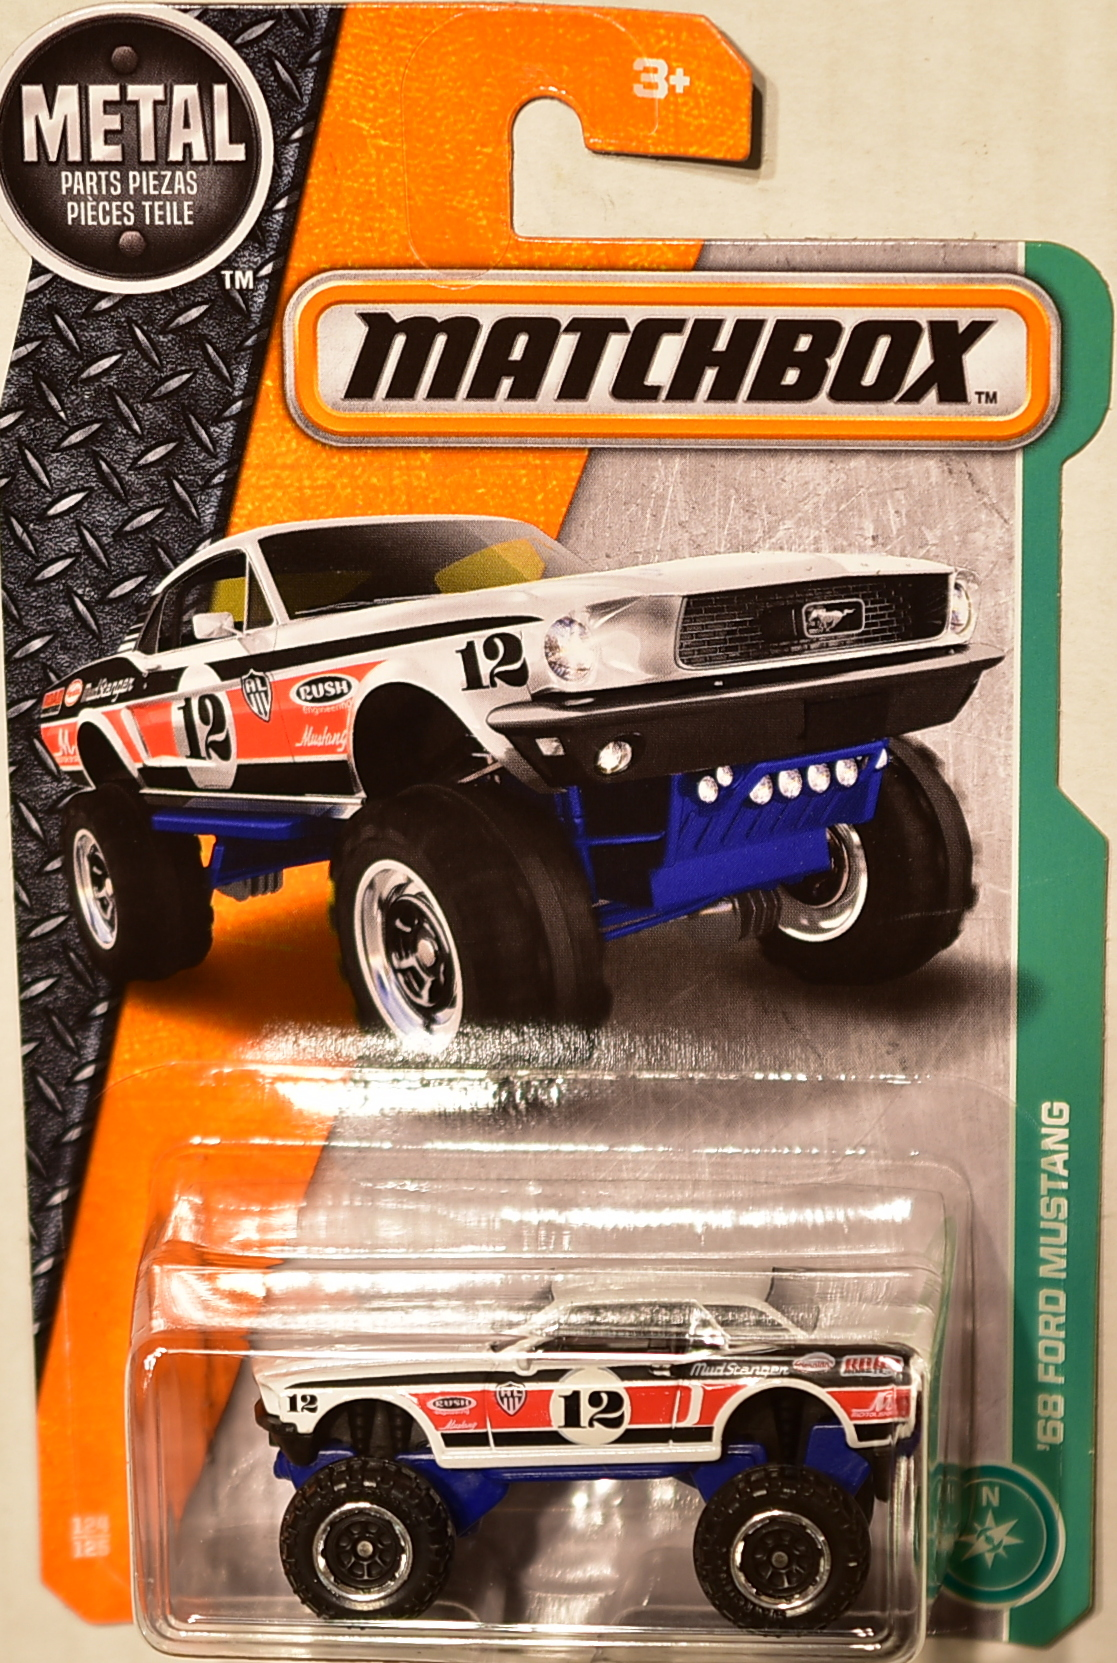 Ford Crown Victoria 2017 >> MATCHBOX 2017 METAL PARTS PIEZAS '68 FORD MUSTANG [0003829] - $2.16 : Biditwinit09.com, Classic ...